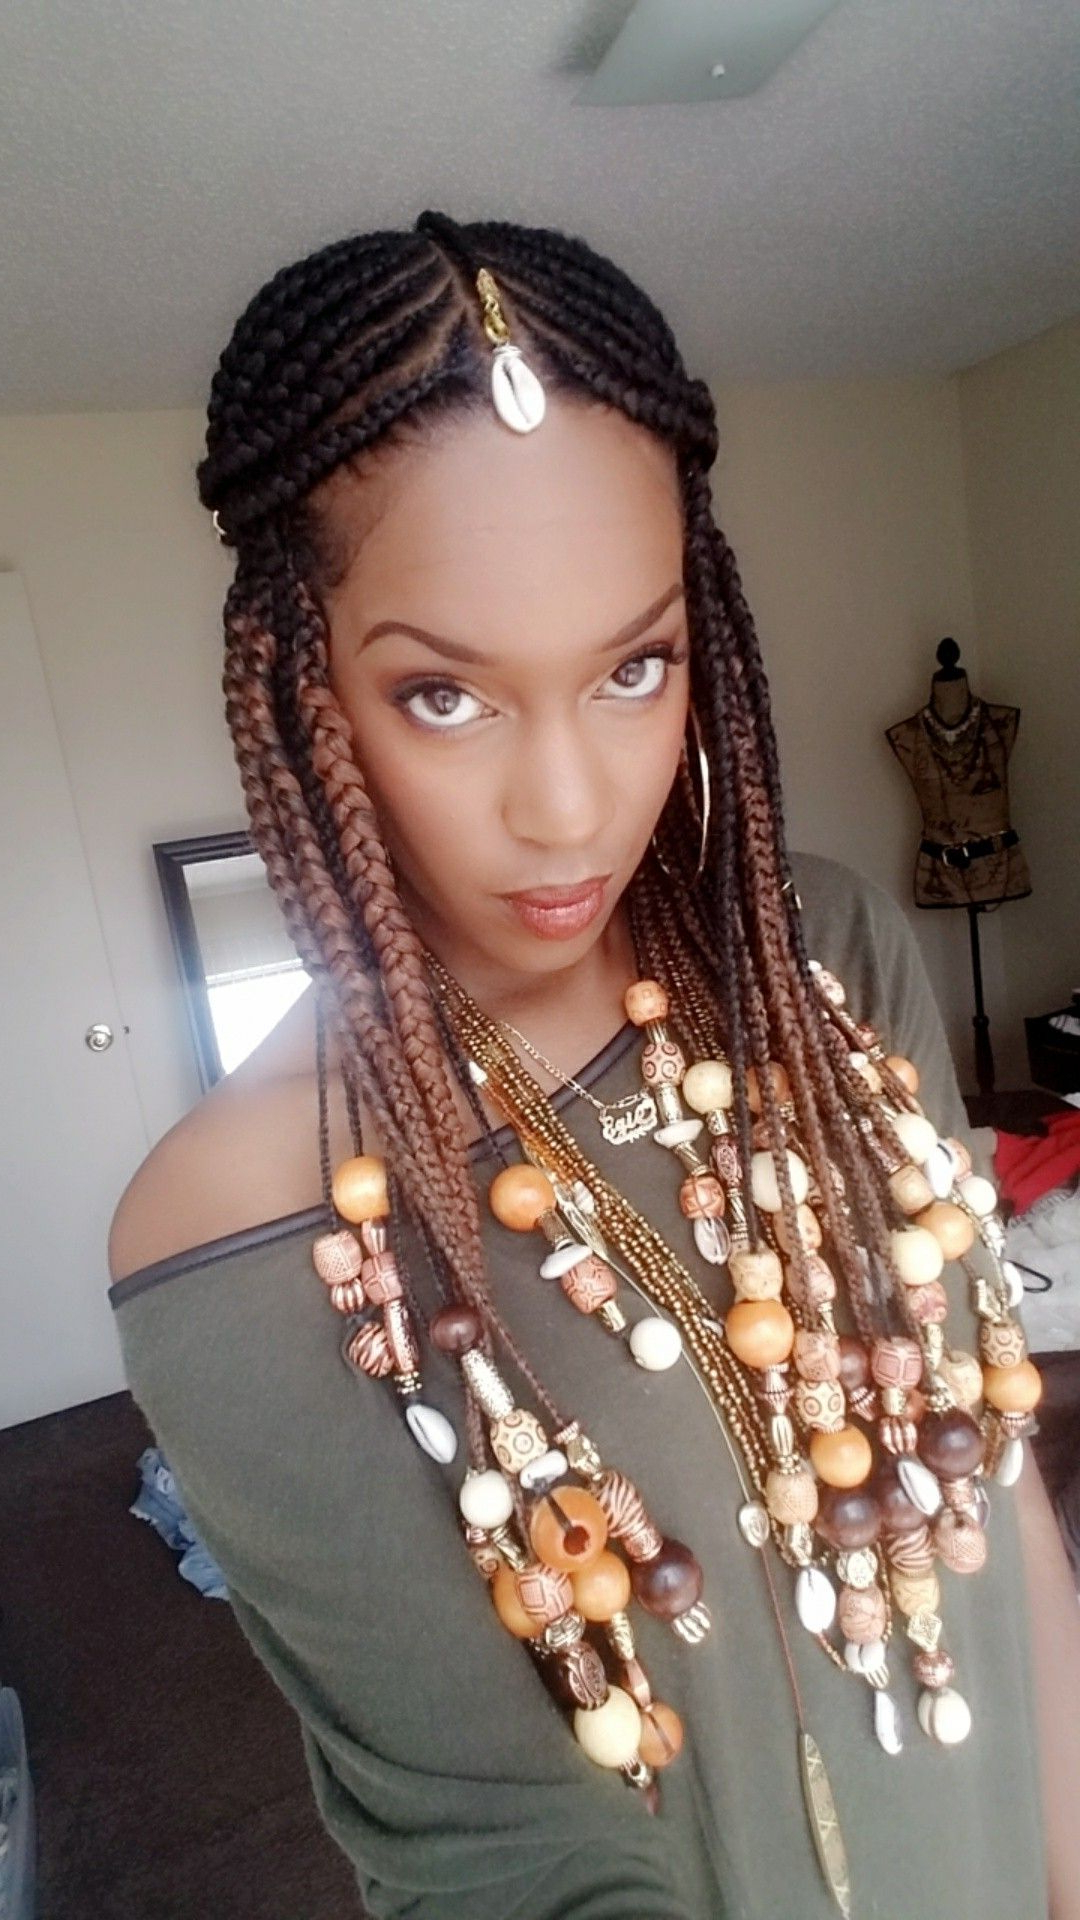 202 + Braided Hairstyles For Black Girls (View 9 of 20)